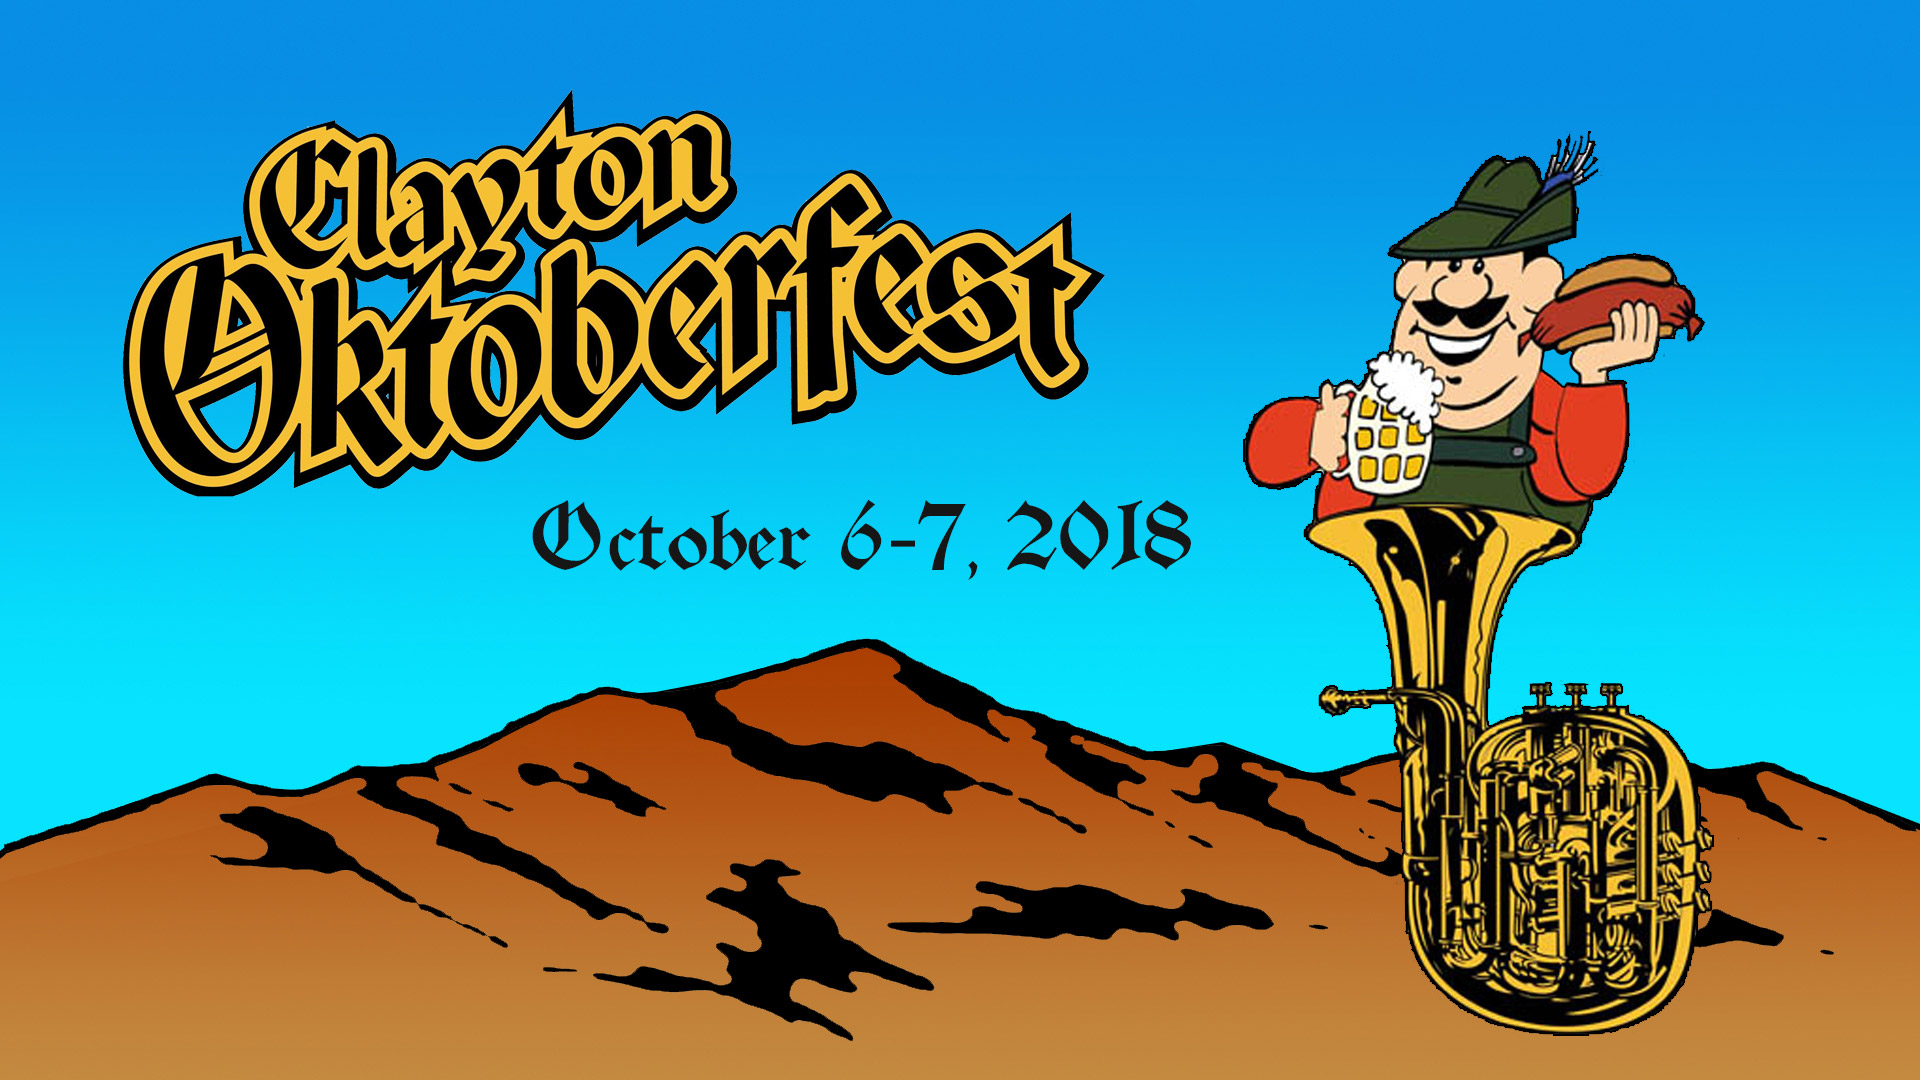 Clayton Octoberfest picture